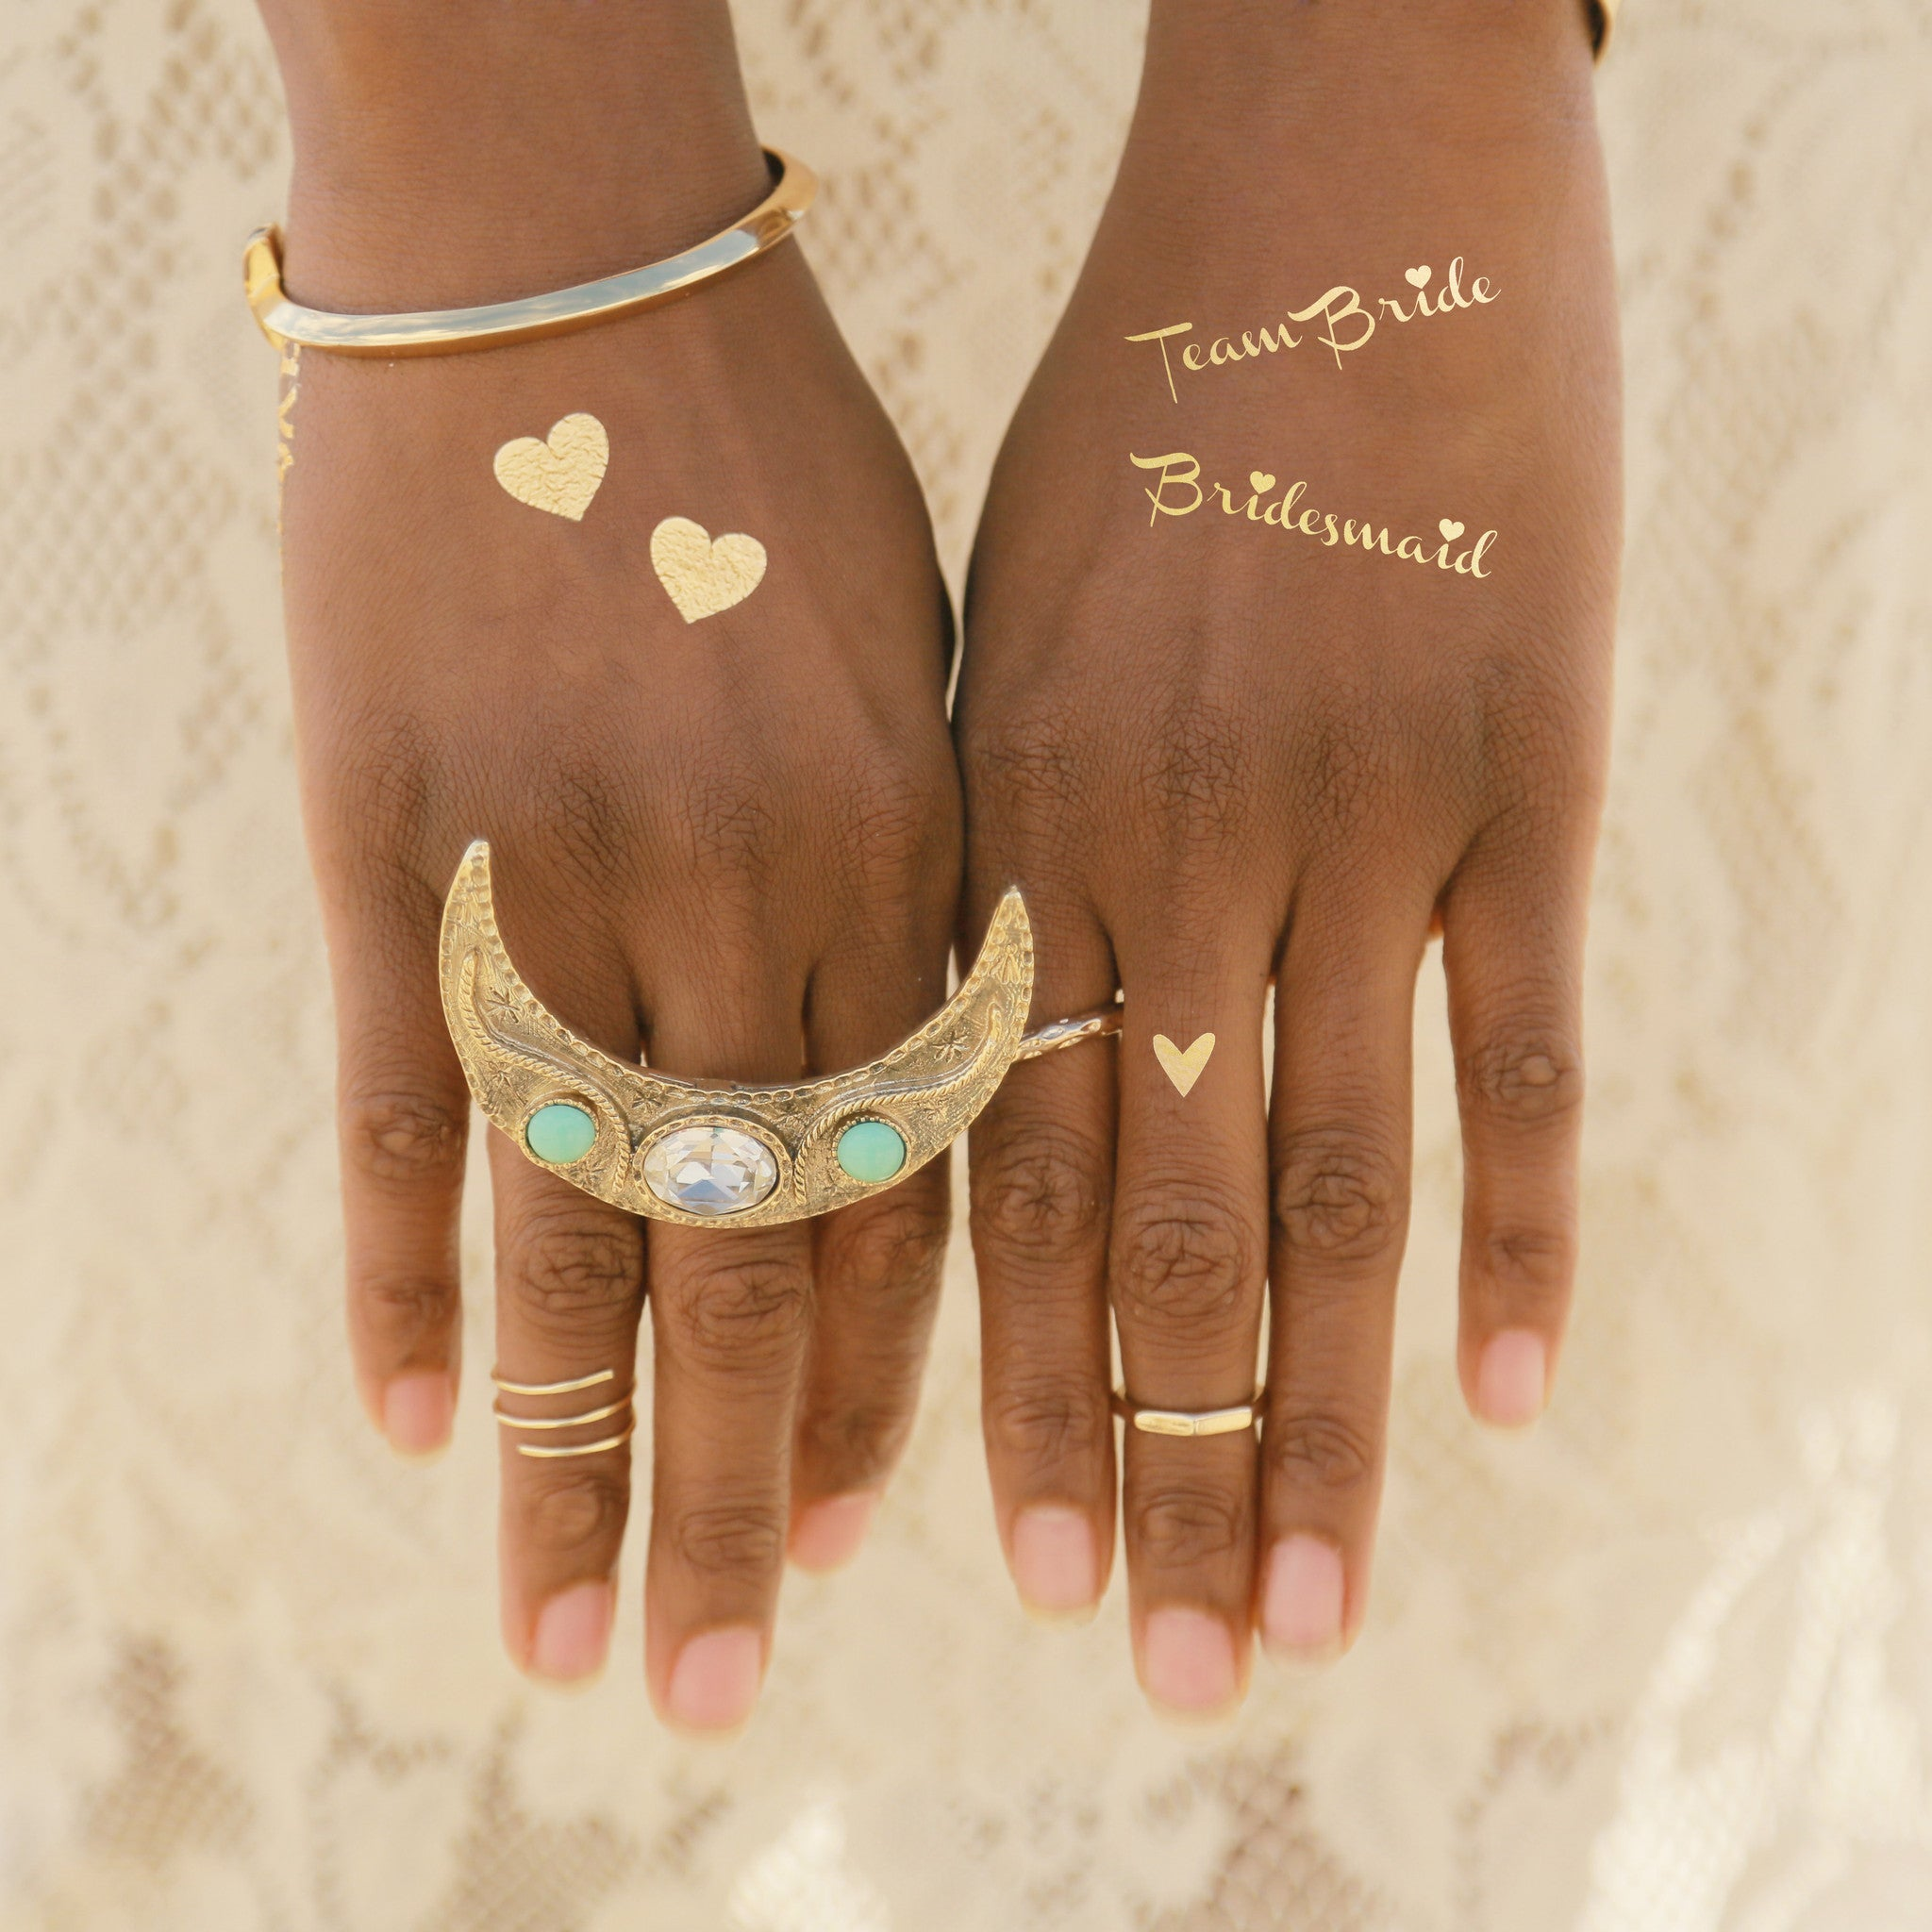 Gold Tattoo Ink: Create Your Own Wedding Flash Tattoo!